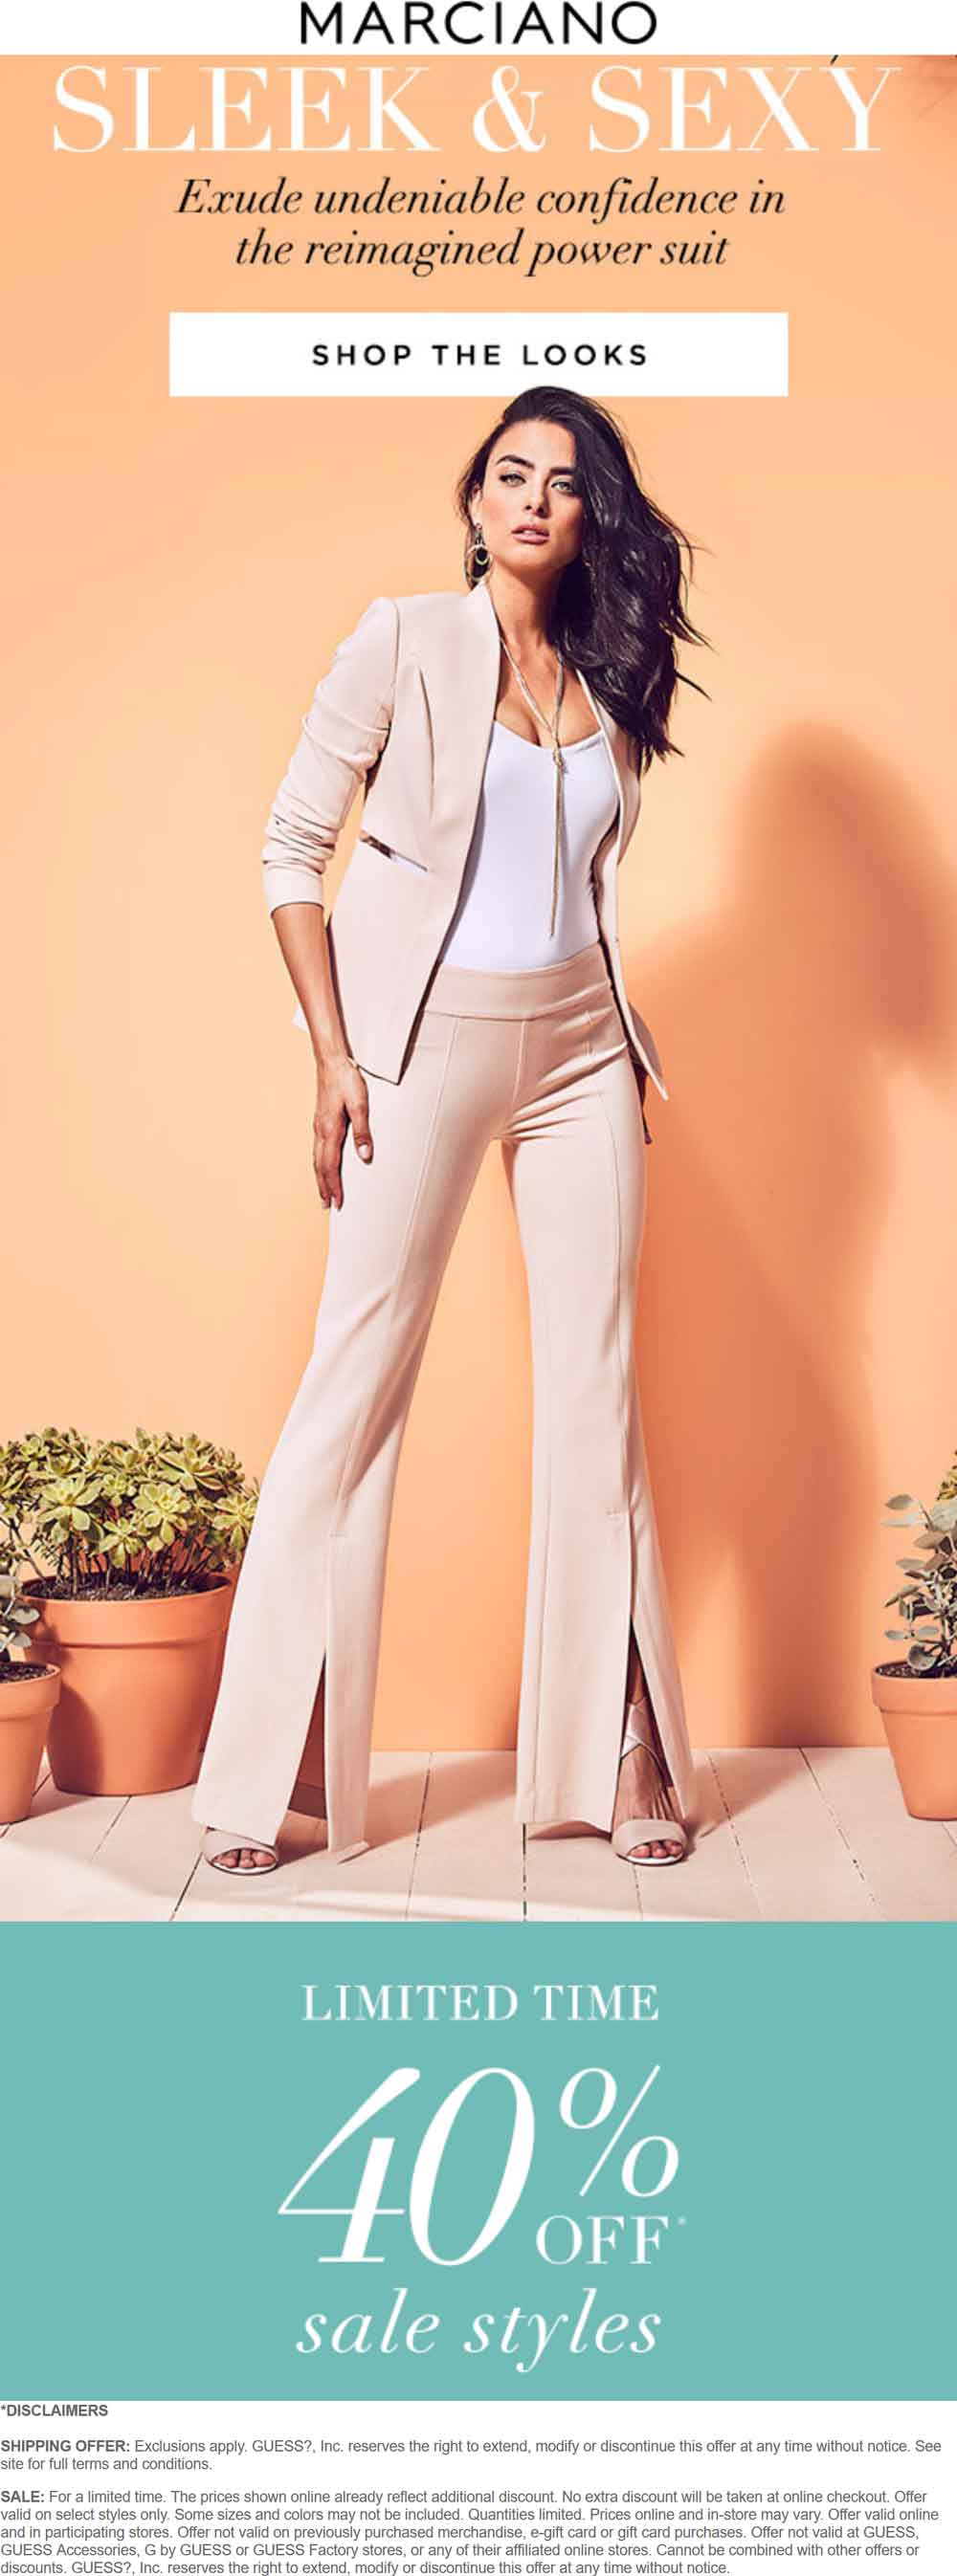 Marciano Coupon October 2018 Extra 40% off sale items at Marciano, ditto online